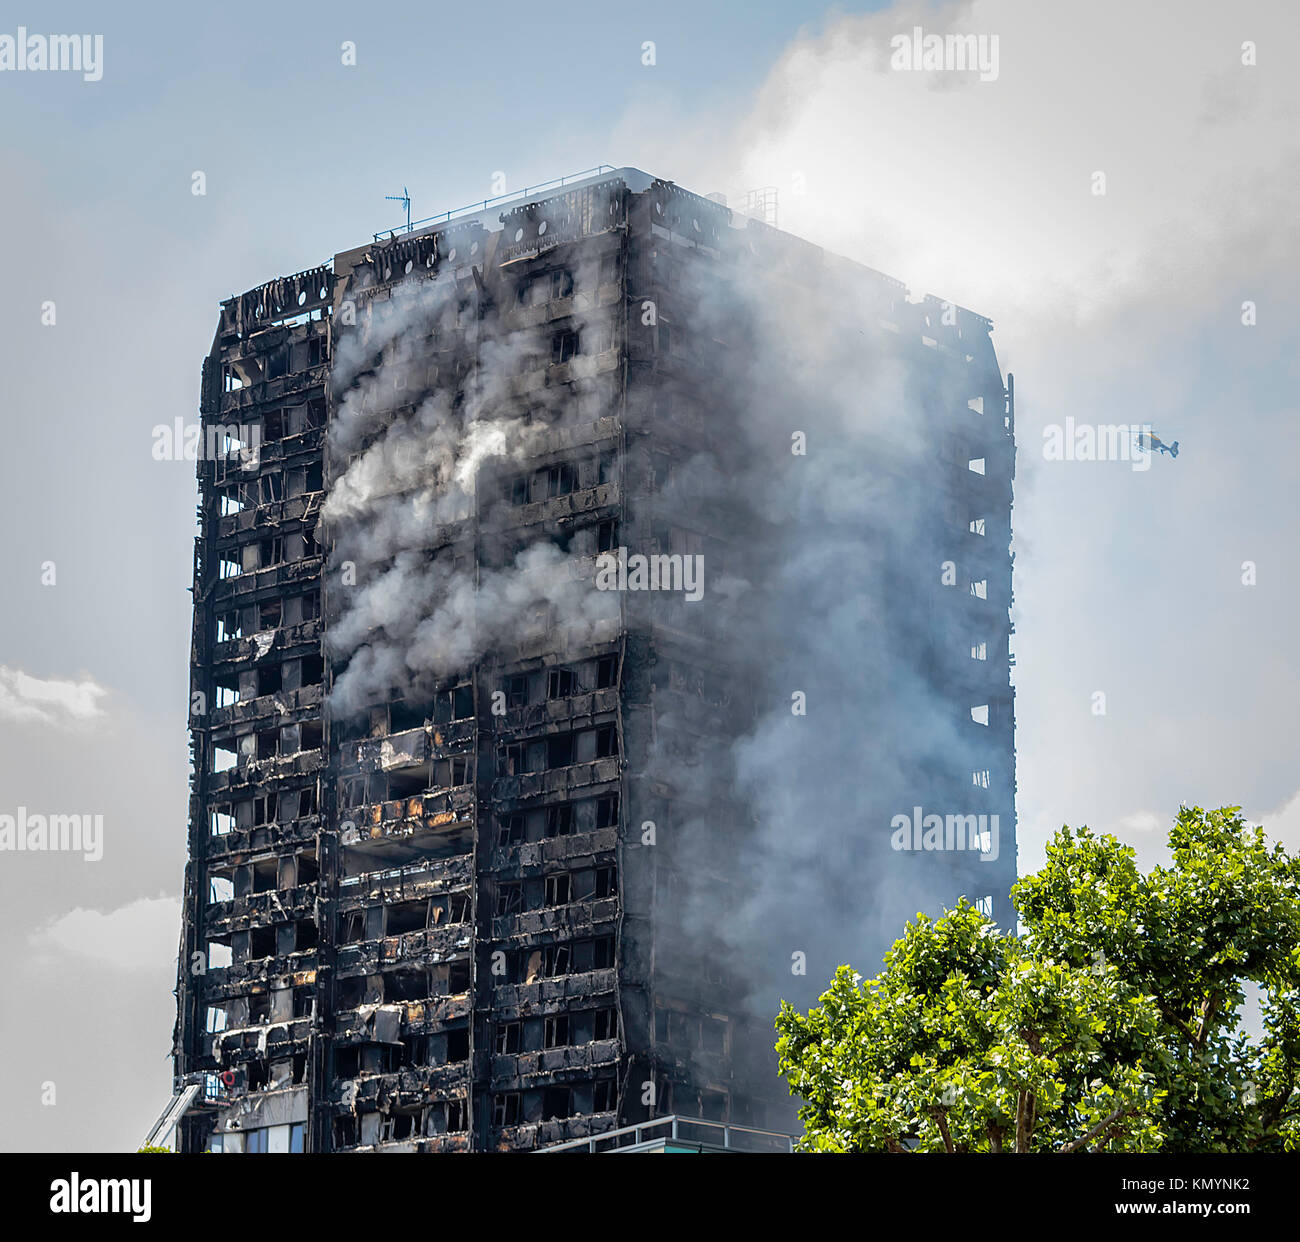 Grenfell Tower Fire, West London, United Kingdom. 14th June, 2017 - Stock Image